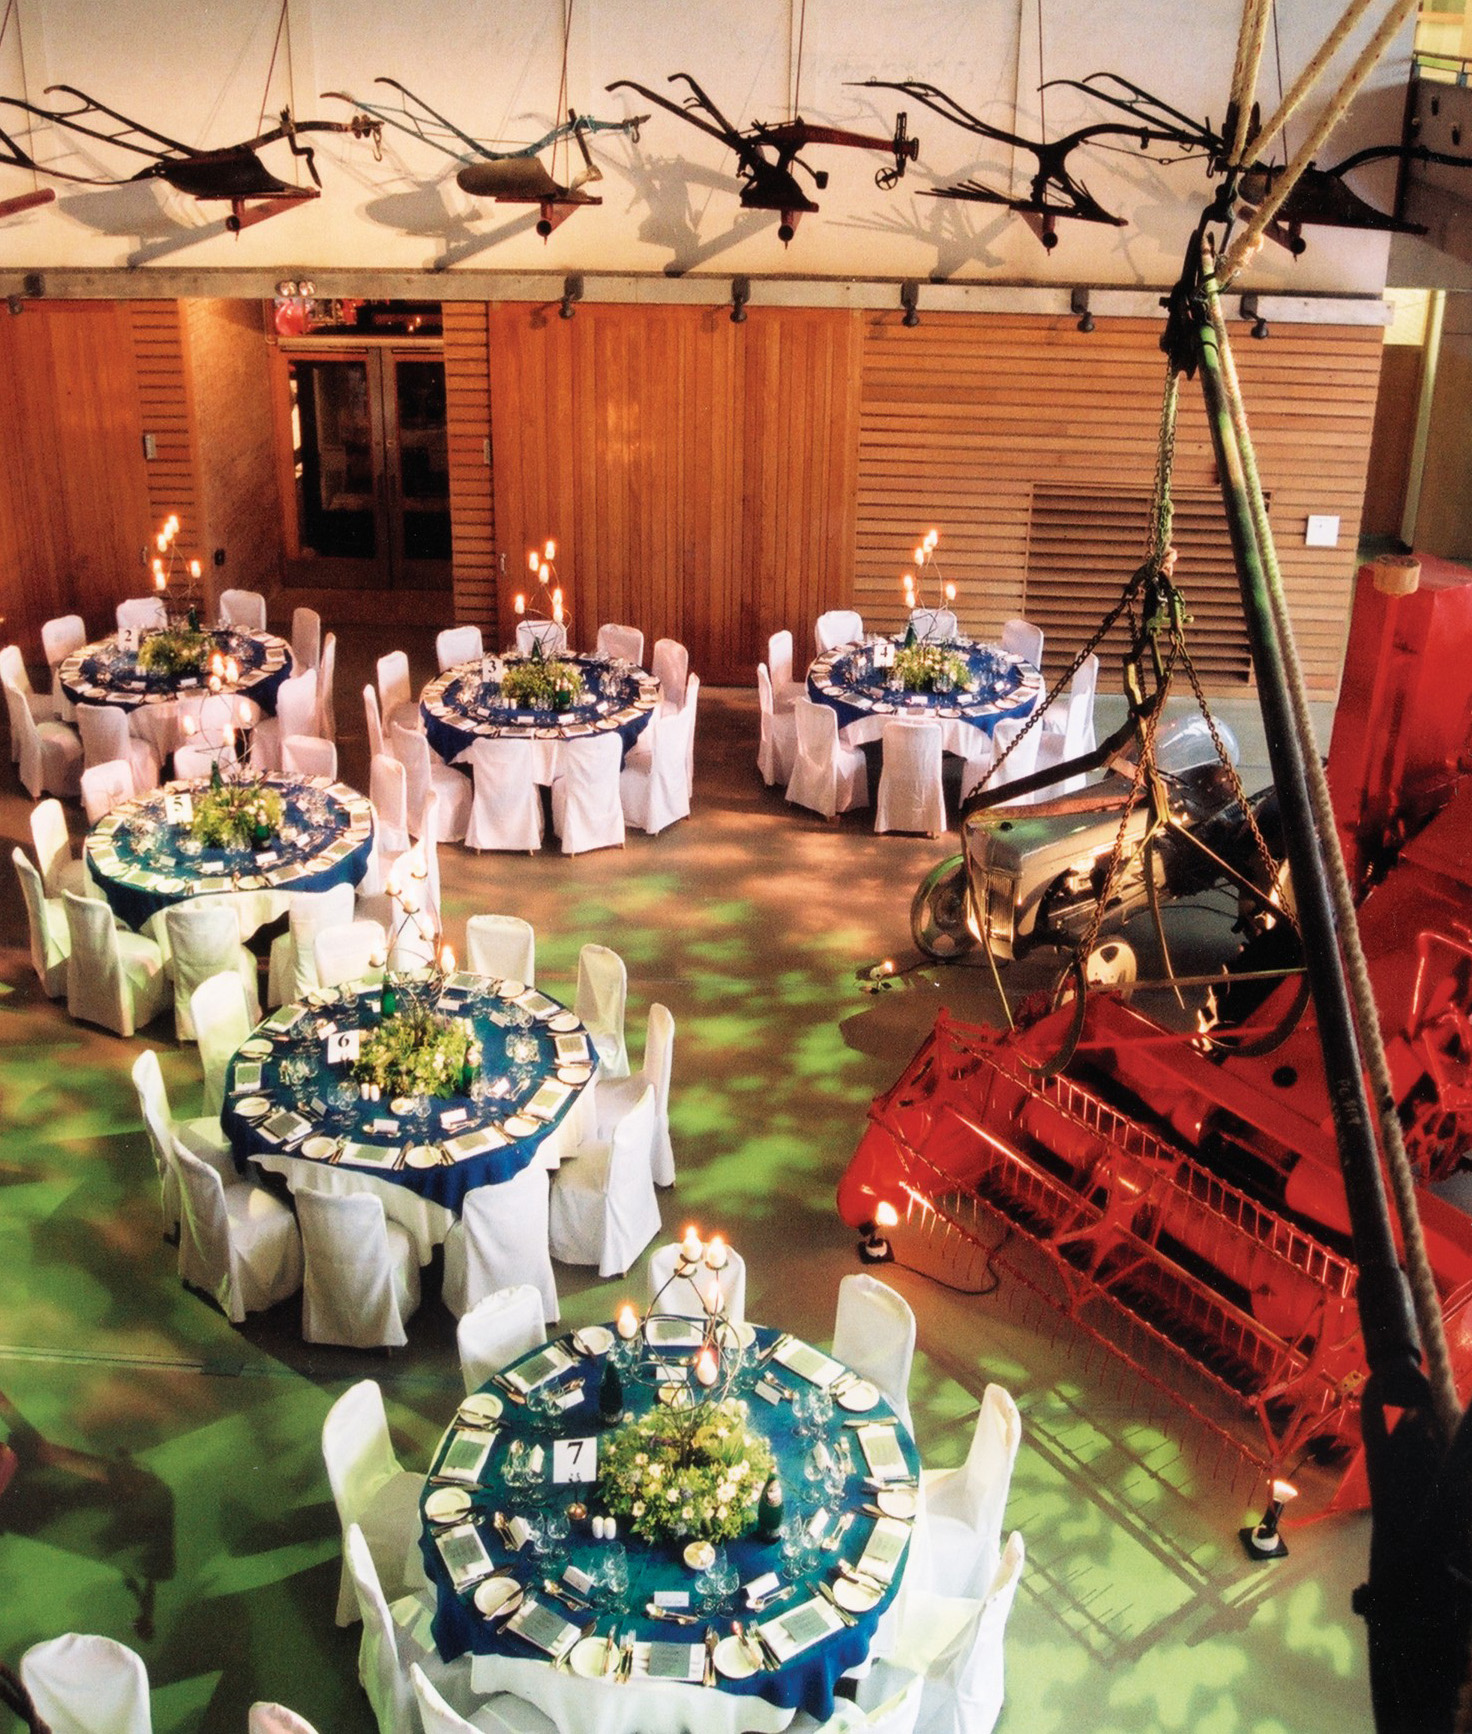 Venue hire at National Museum of Rural Life